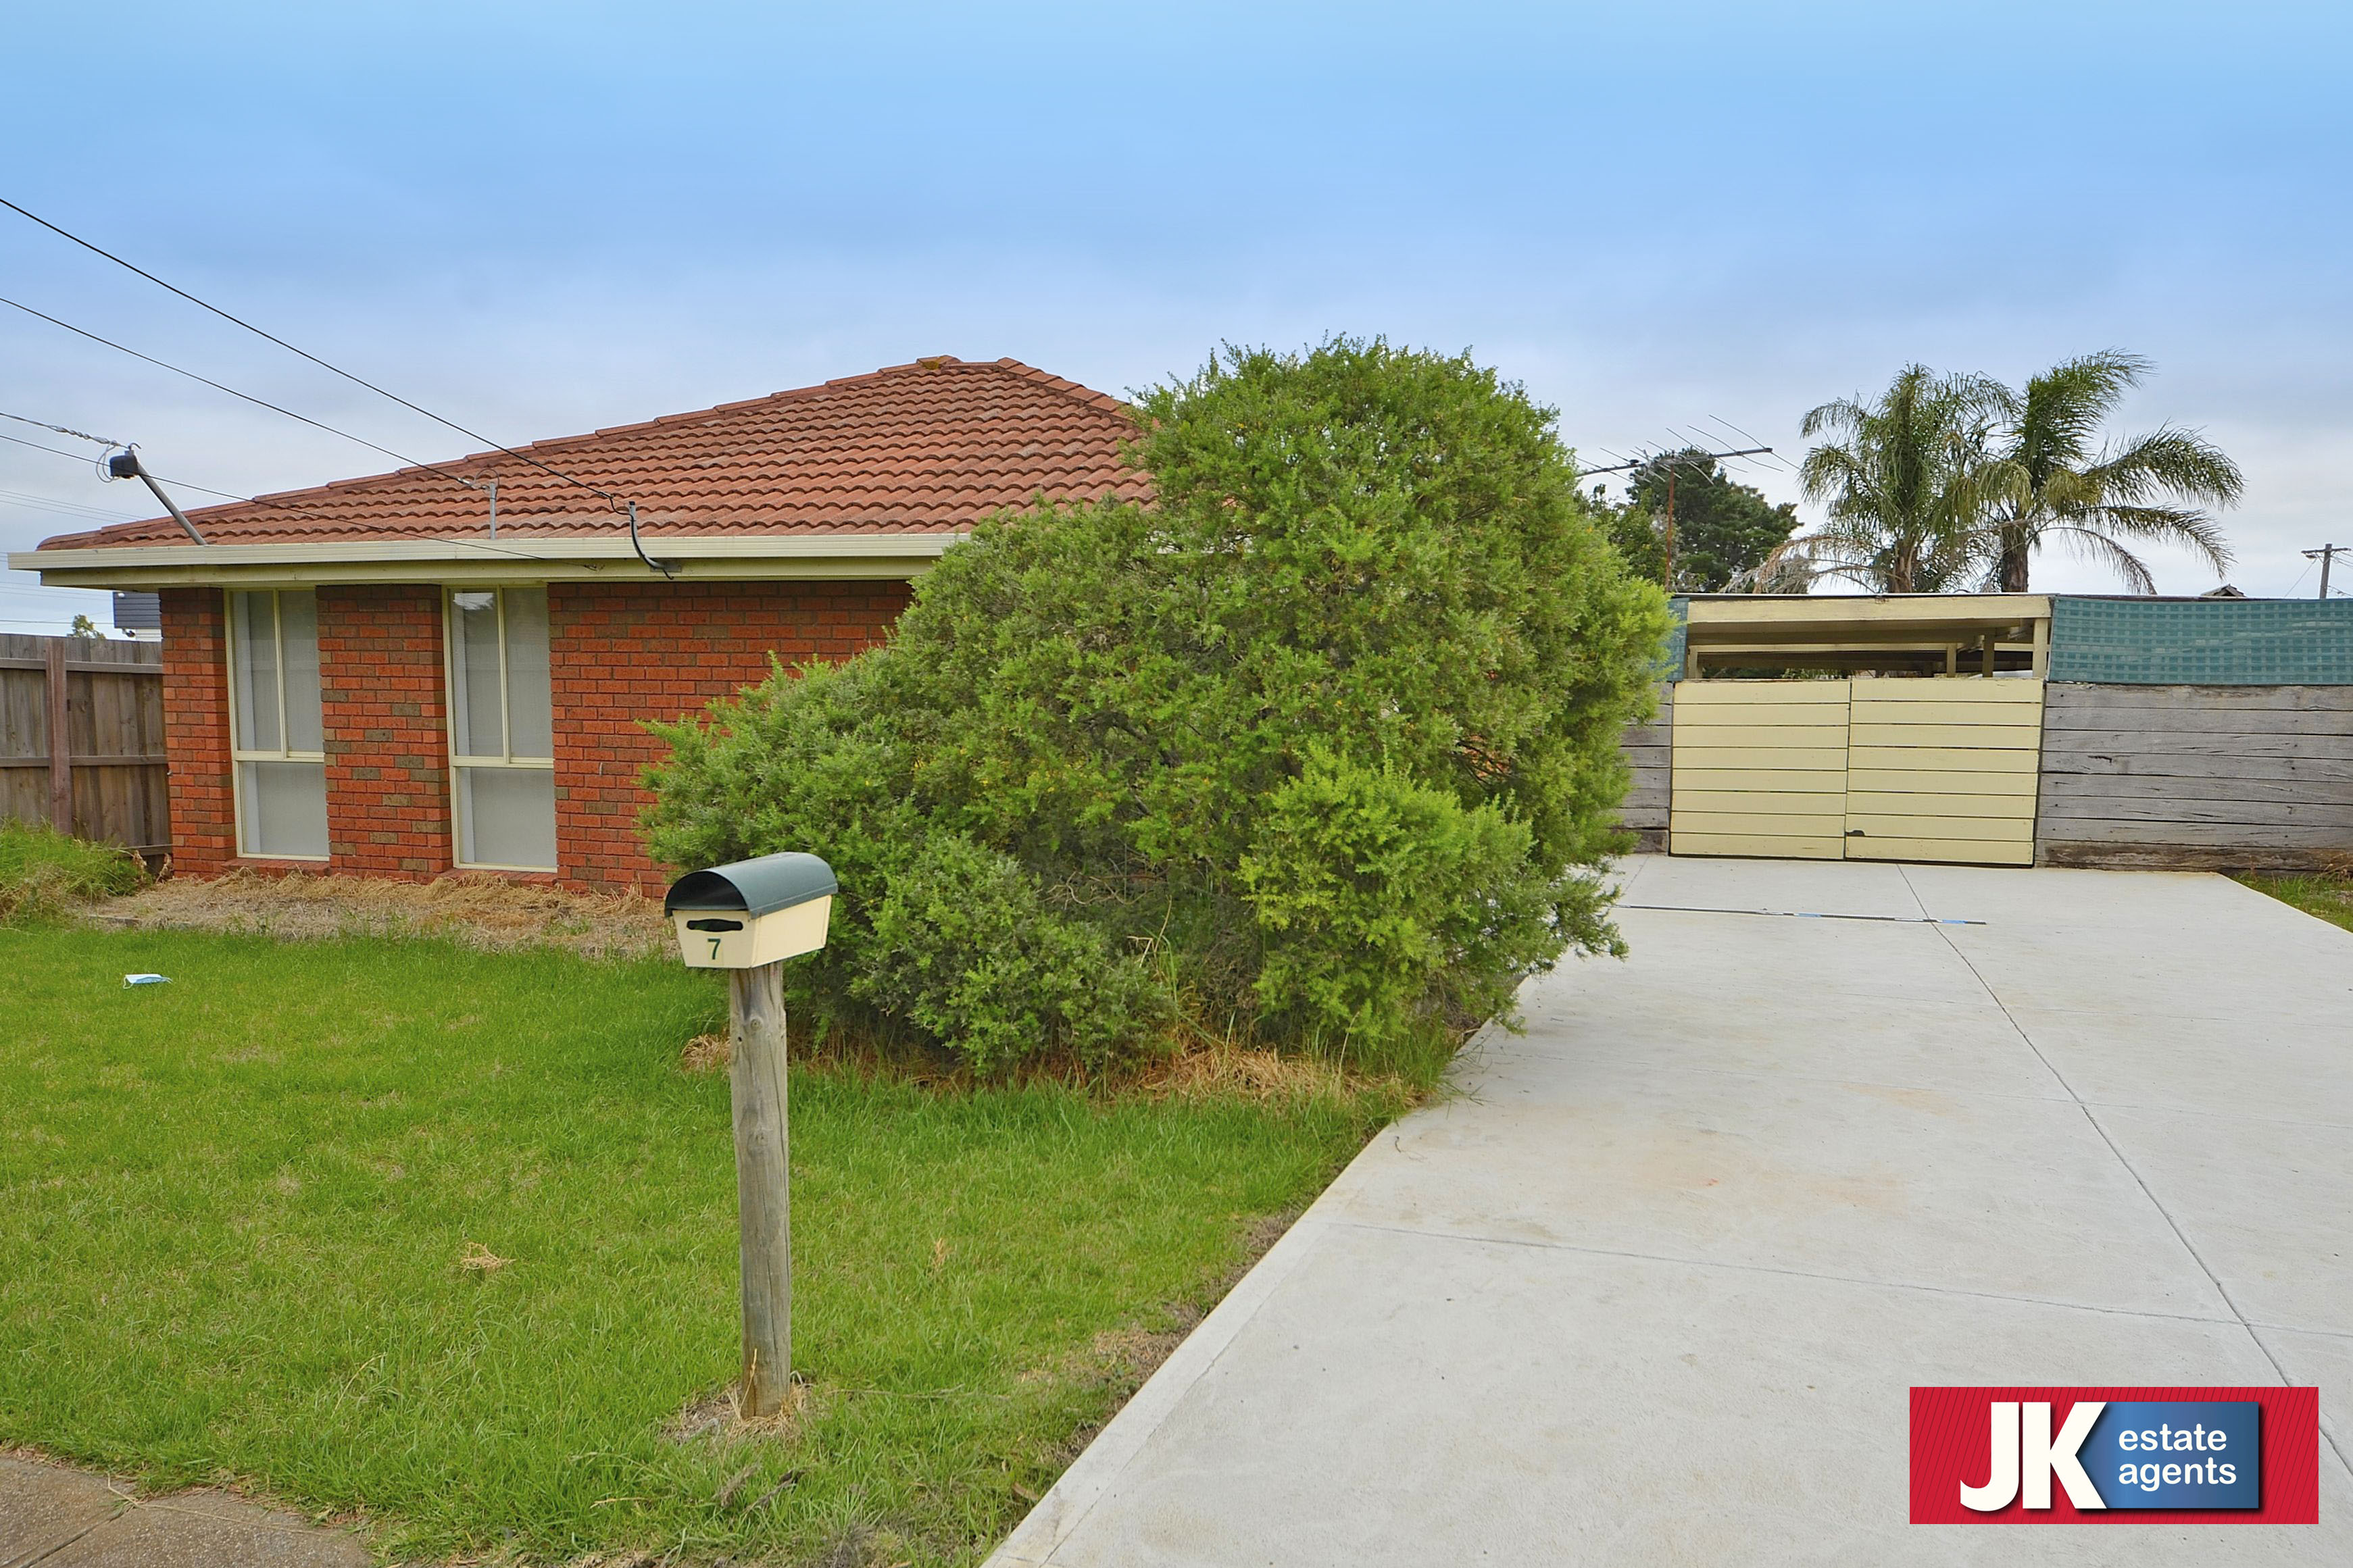 7 Purchas Street WERRIBEE